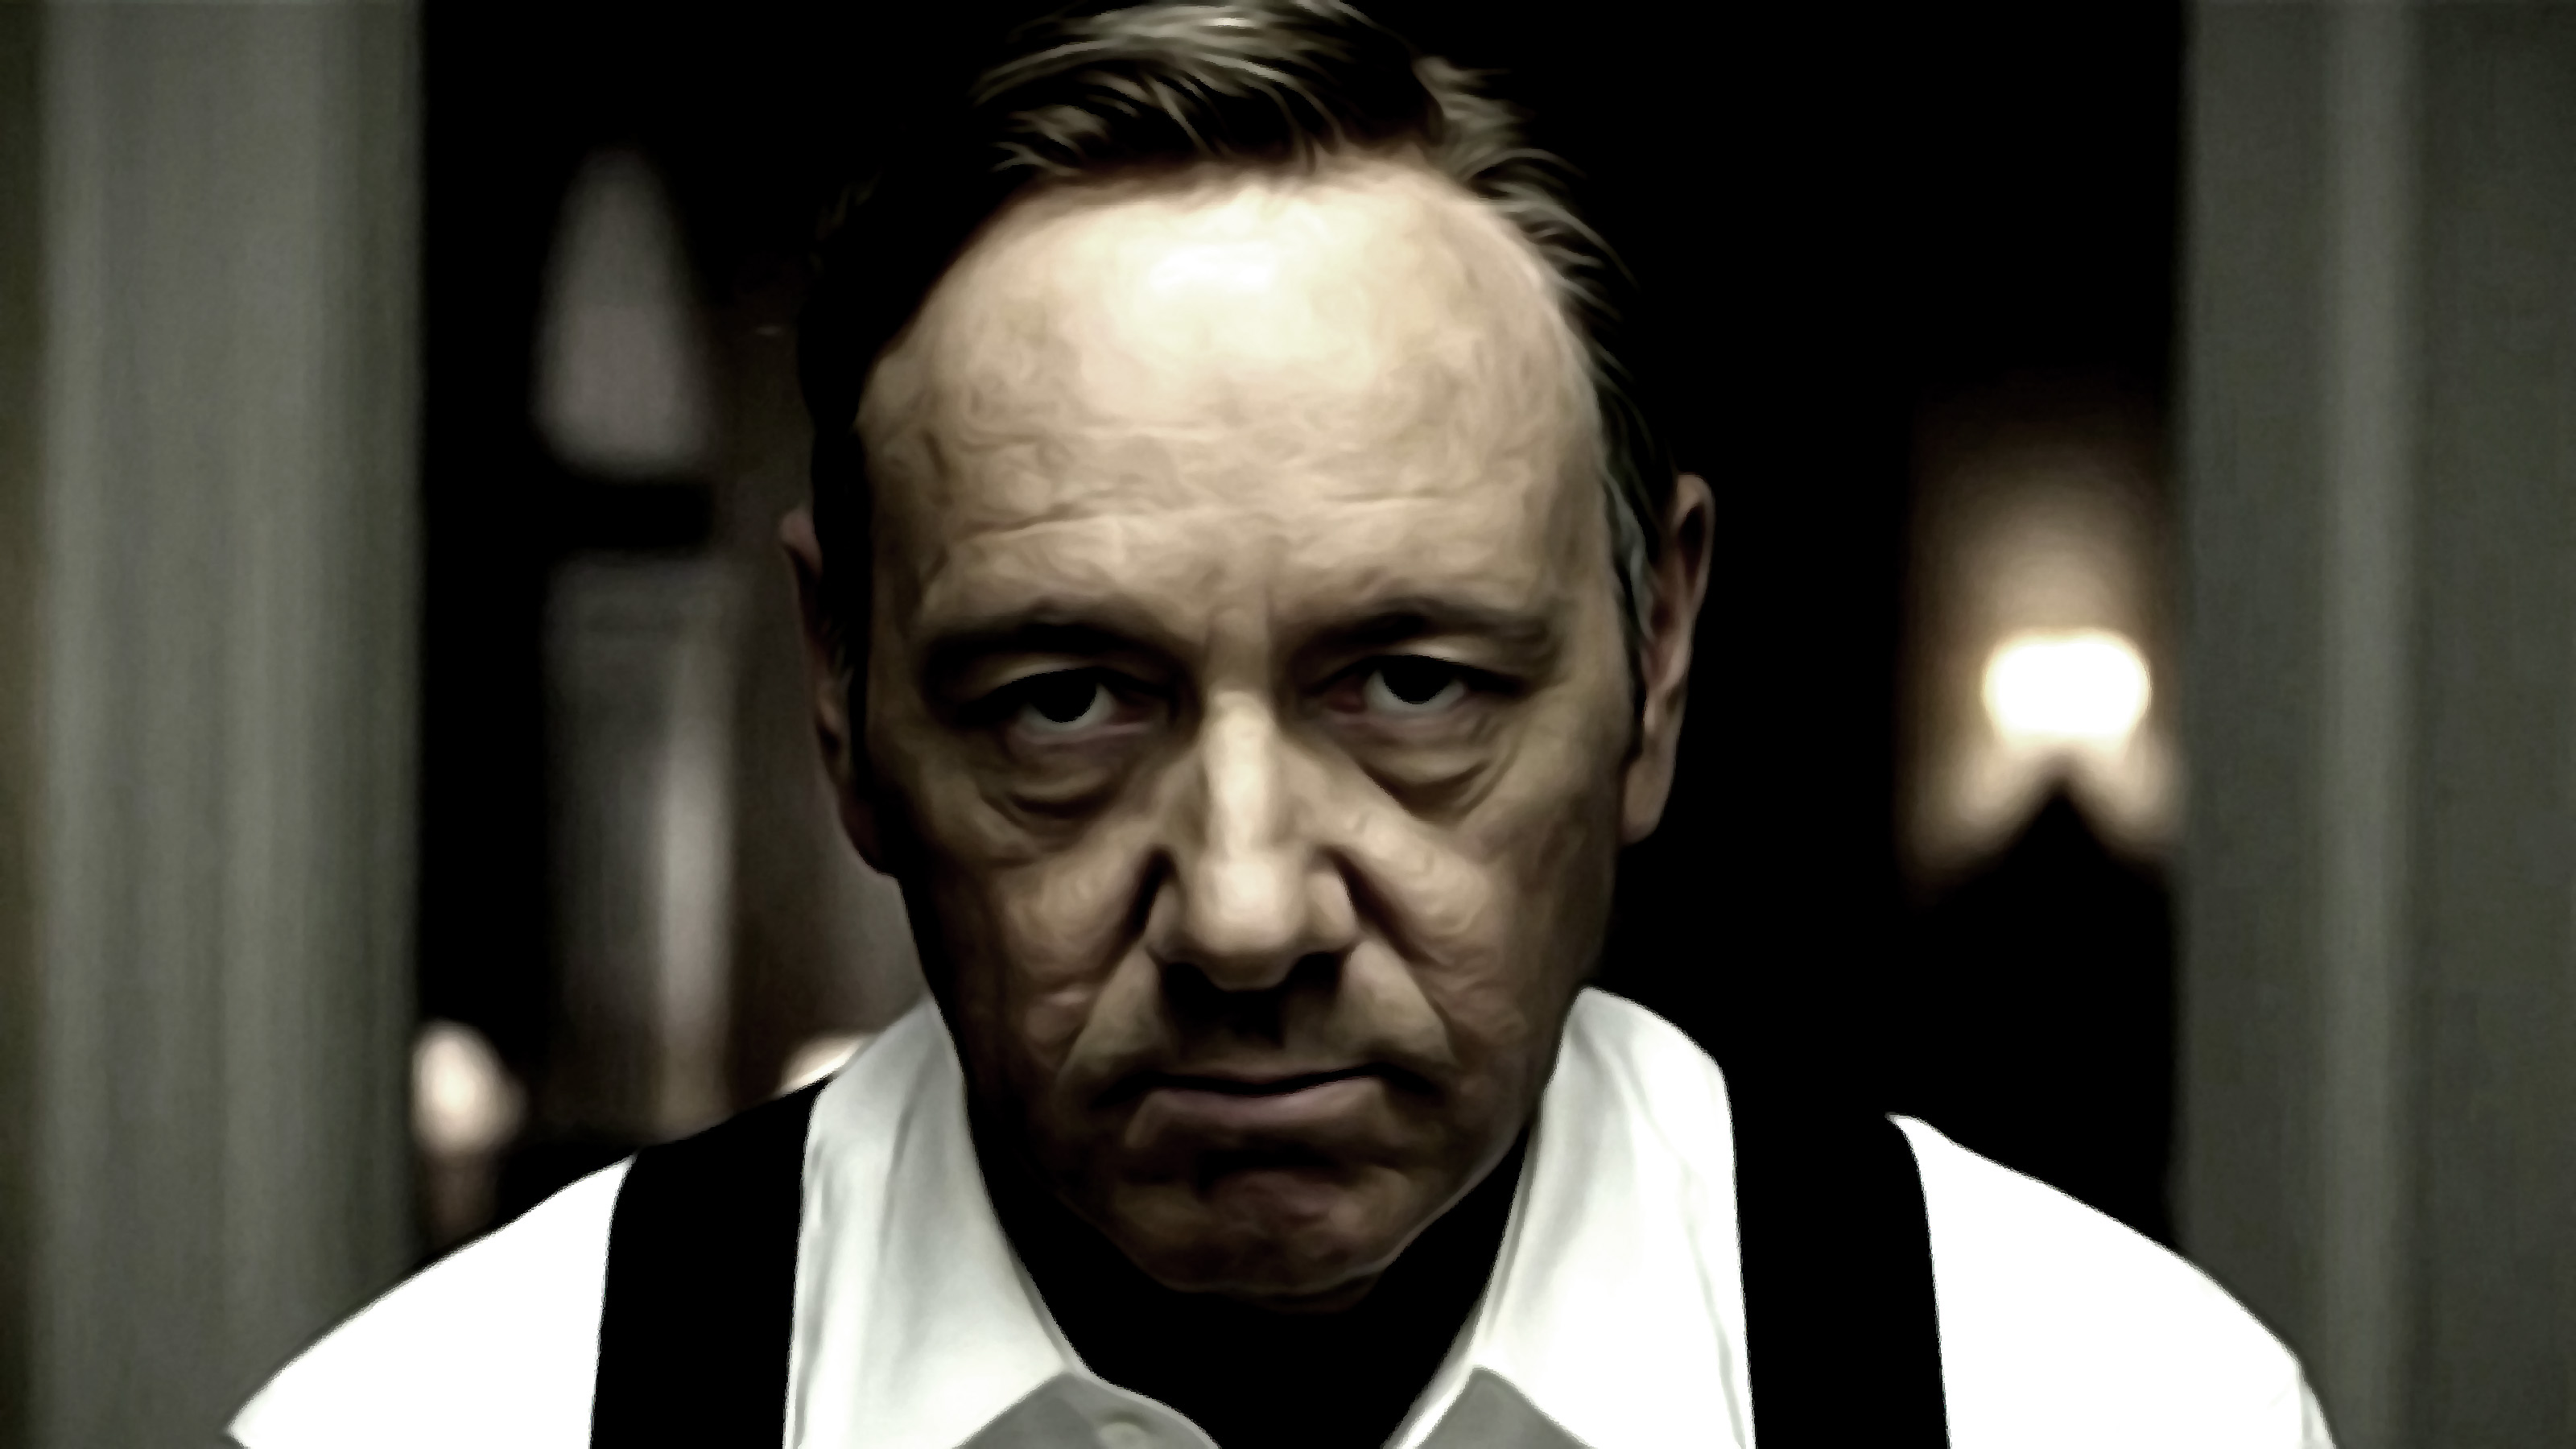 Kevin spacey free desktop wallpapers for widescreen hd - Spacey wallpaper ...